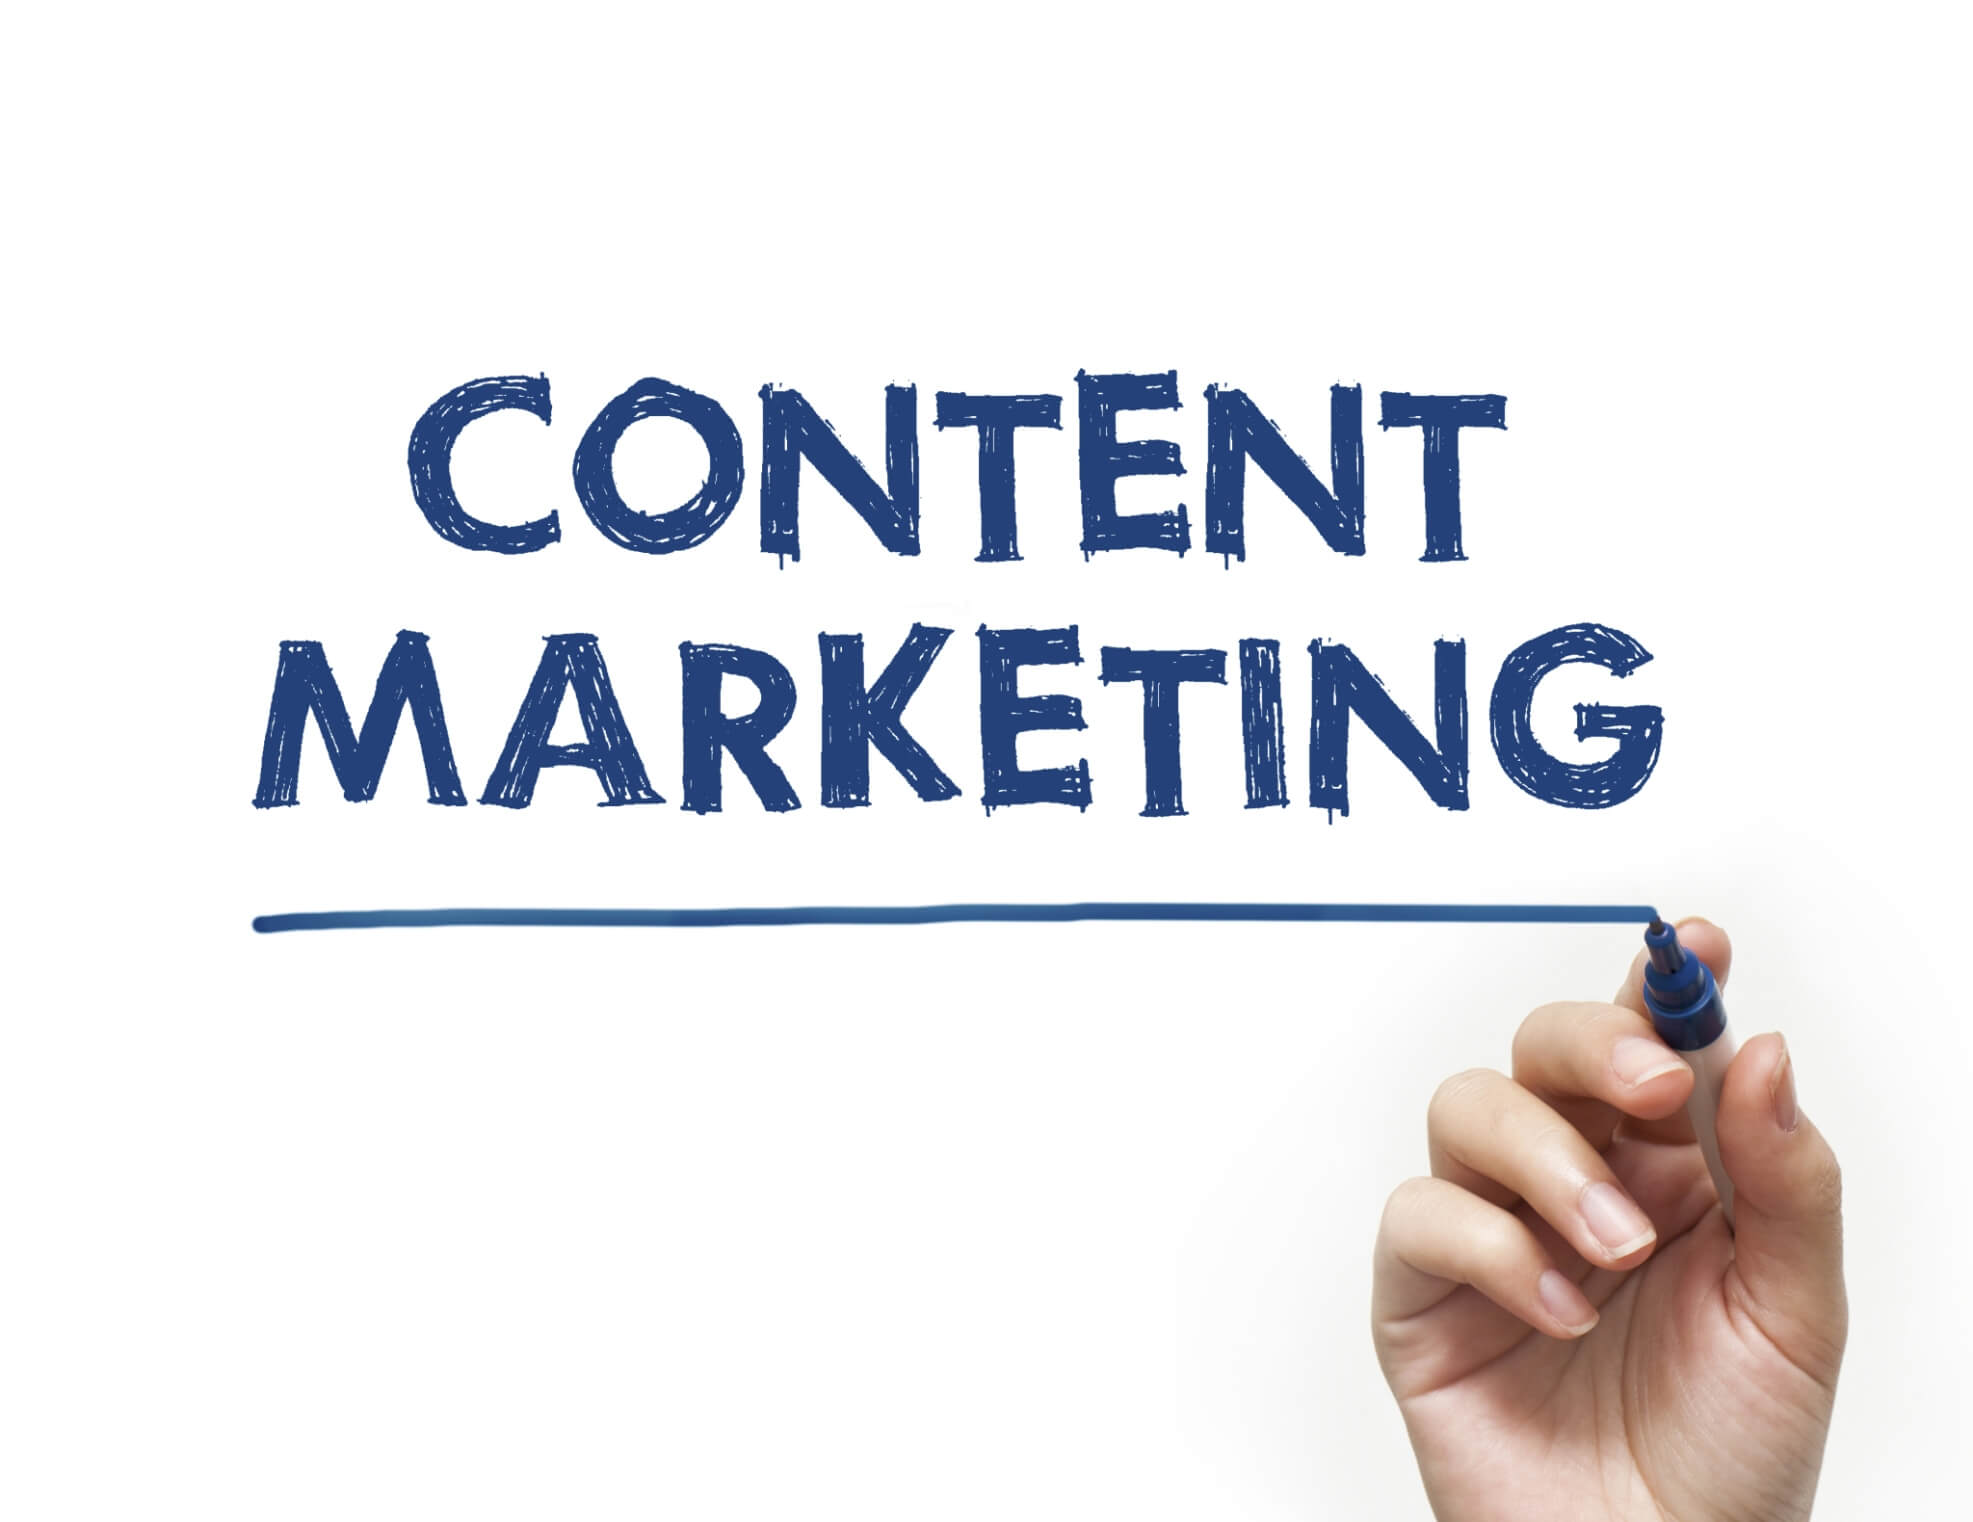 Still Struggling to generate leads? Follow these content marketing strategies